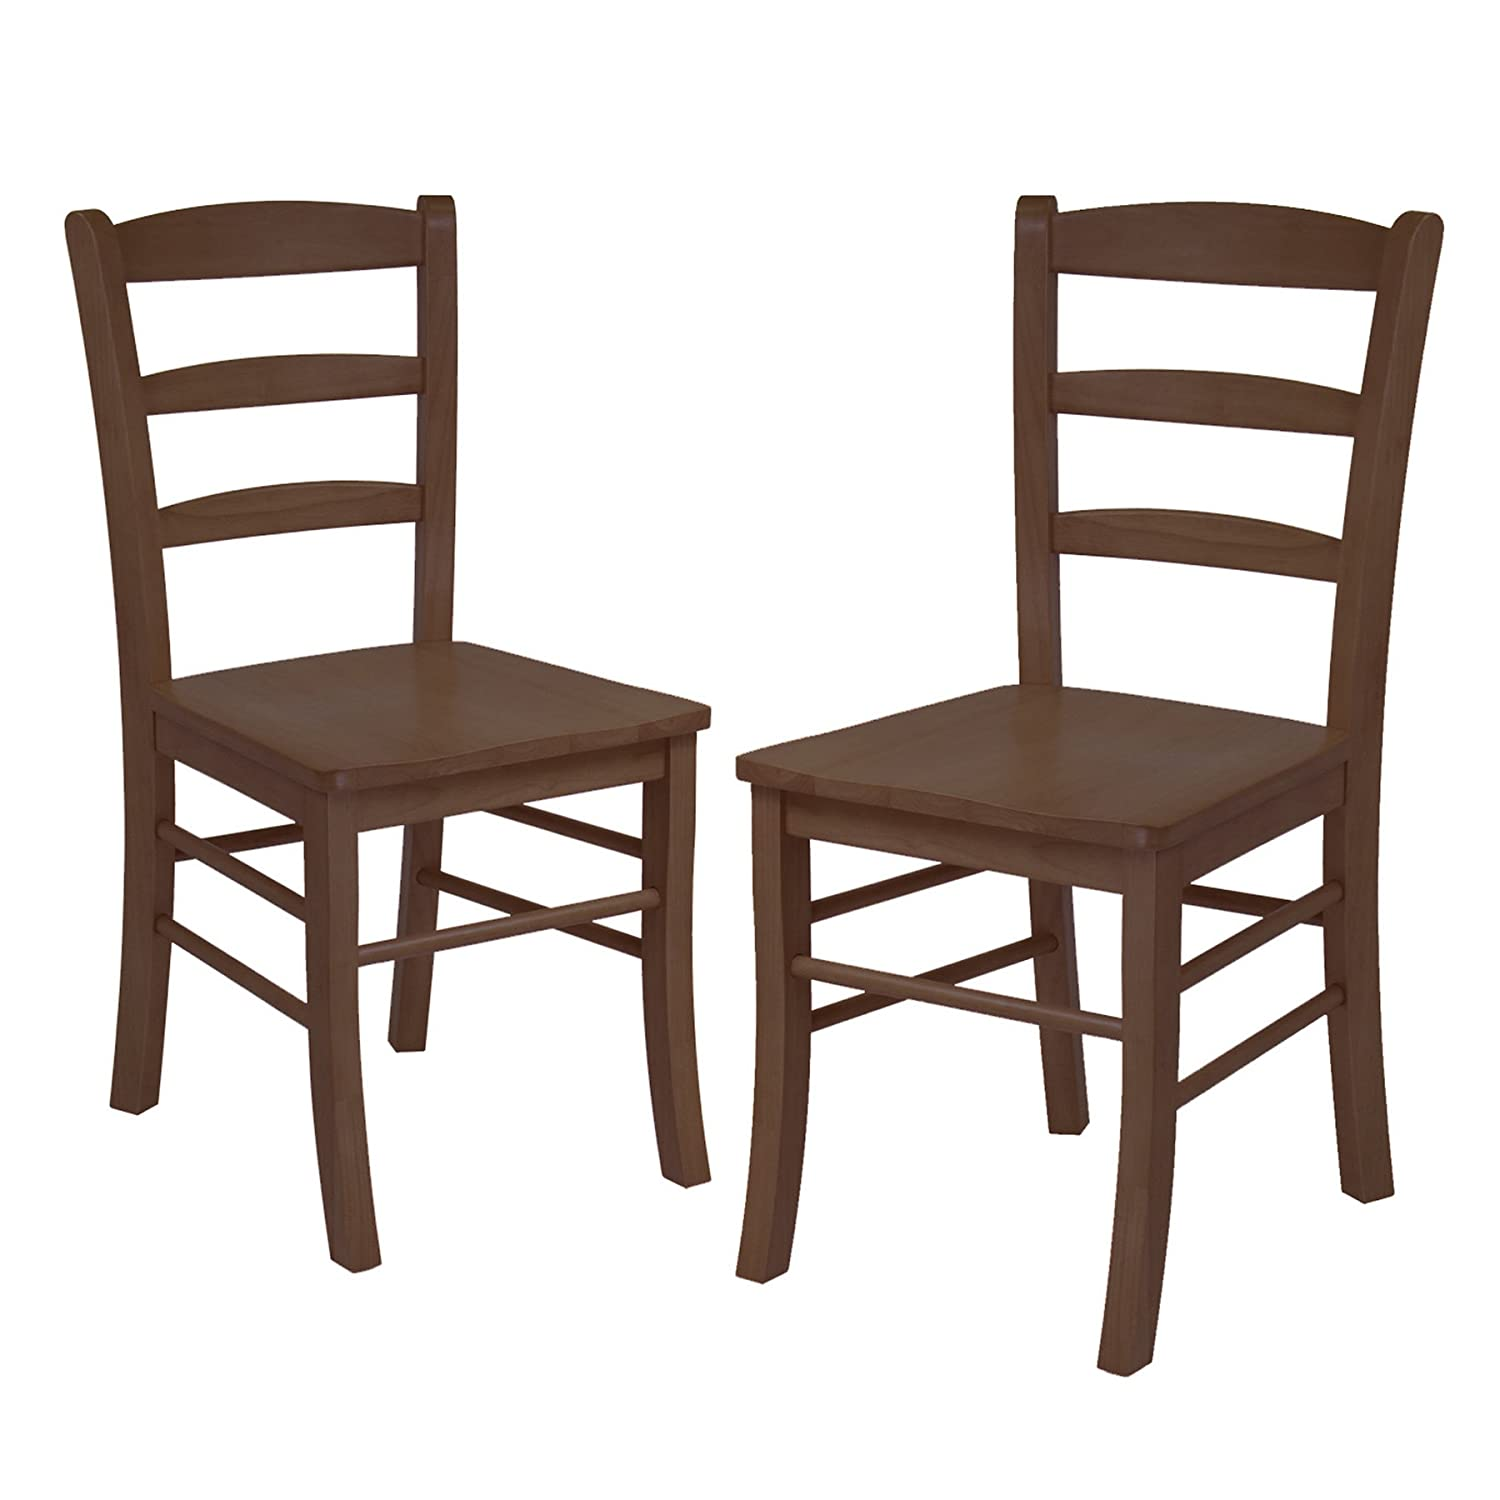 Dark Wood Dining Room Chairs solid wood dining table sets high quality interior exterior design within solid wood dining room furniture Amazoncom Winsome Wood Ladder Back Chair Light Oak Set Of 2 Kitchen Dining